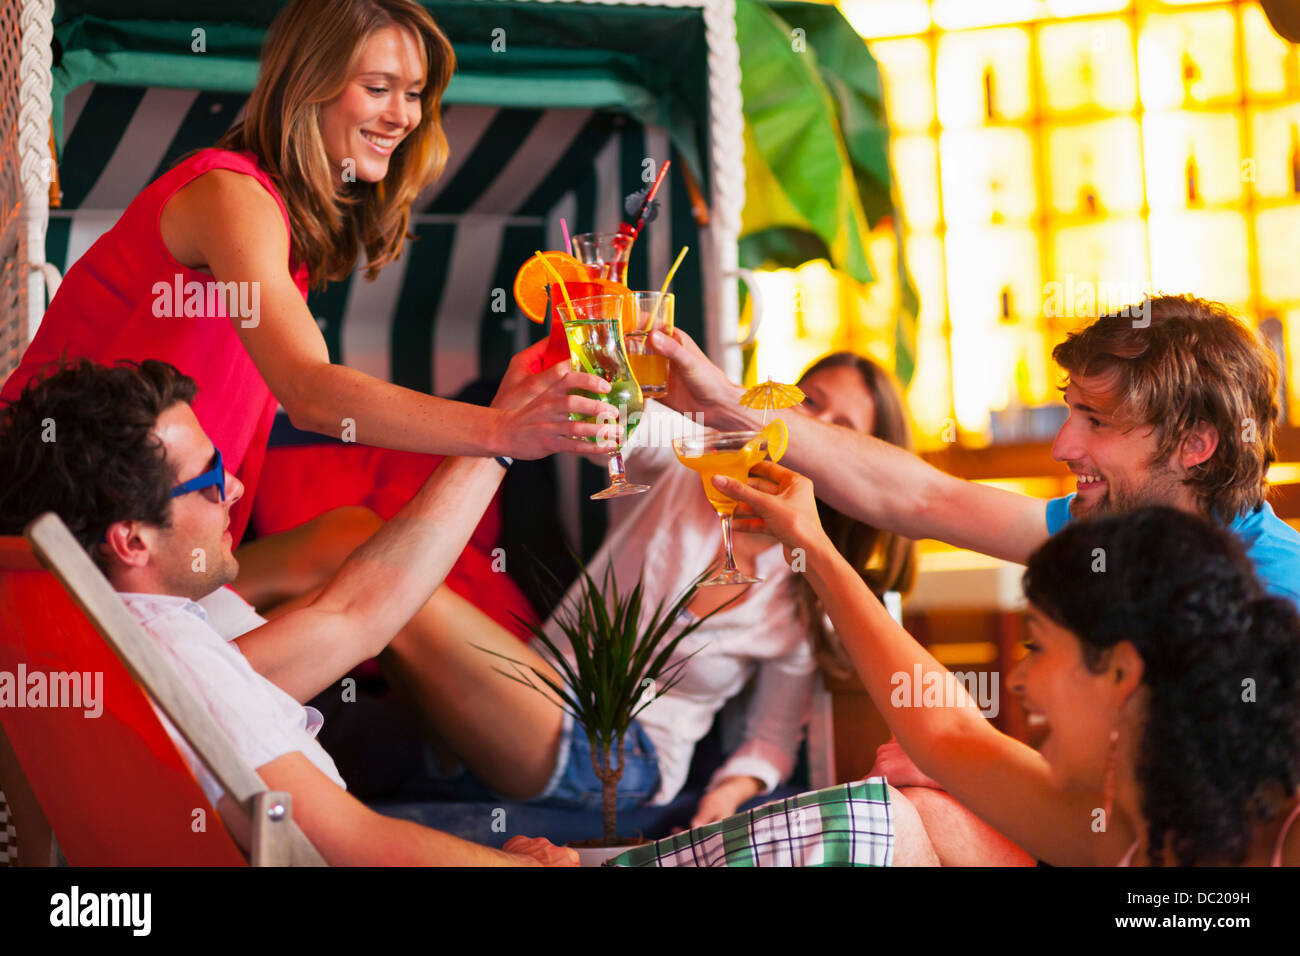 Group of friends with cocktails at indoor beach party - Stock Image